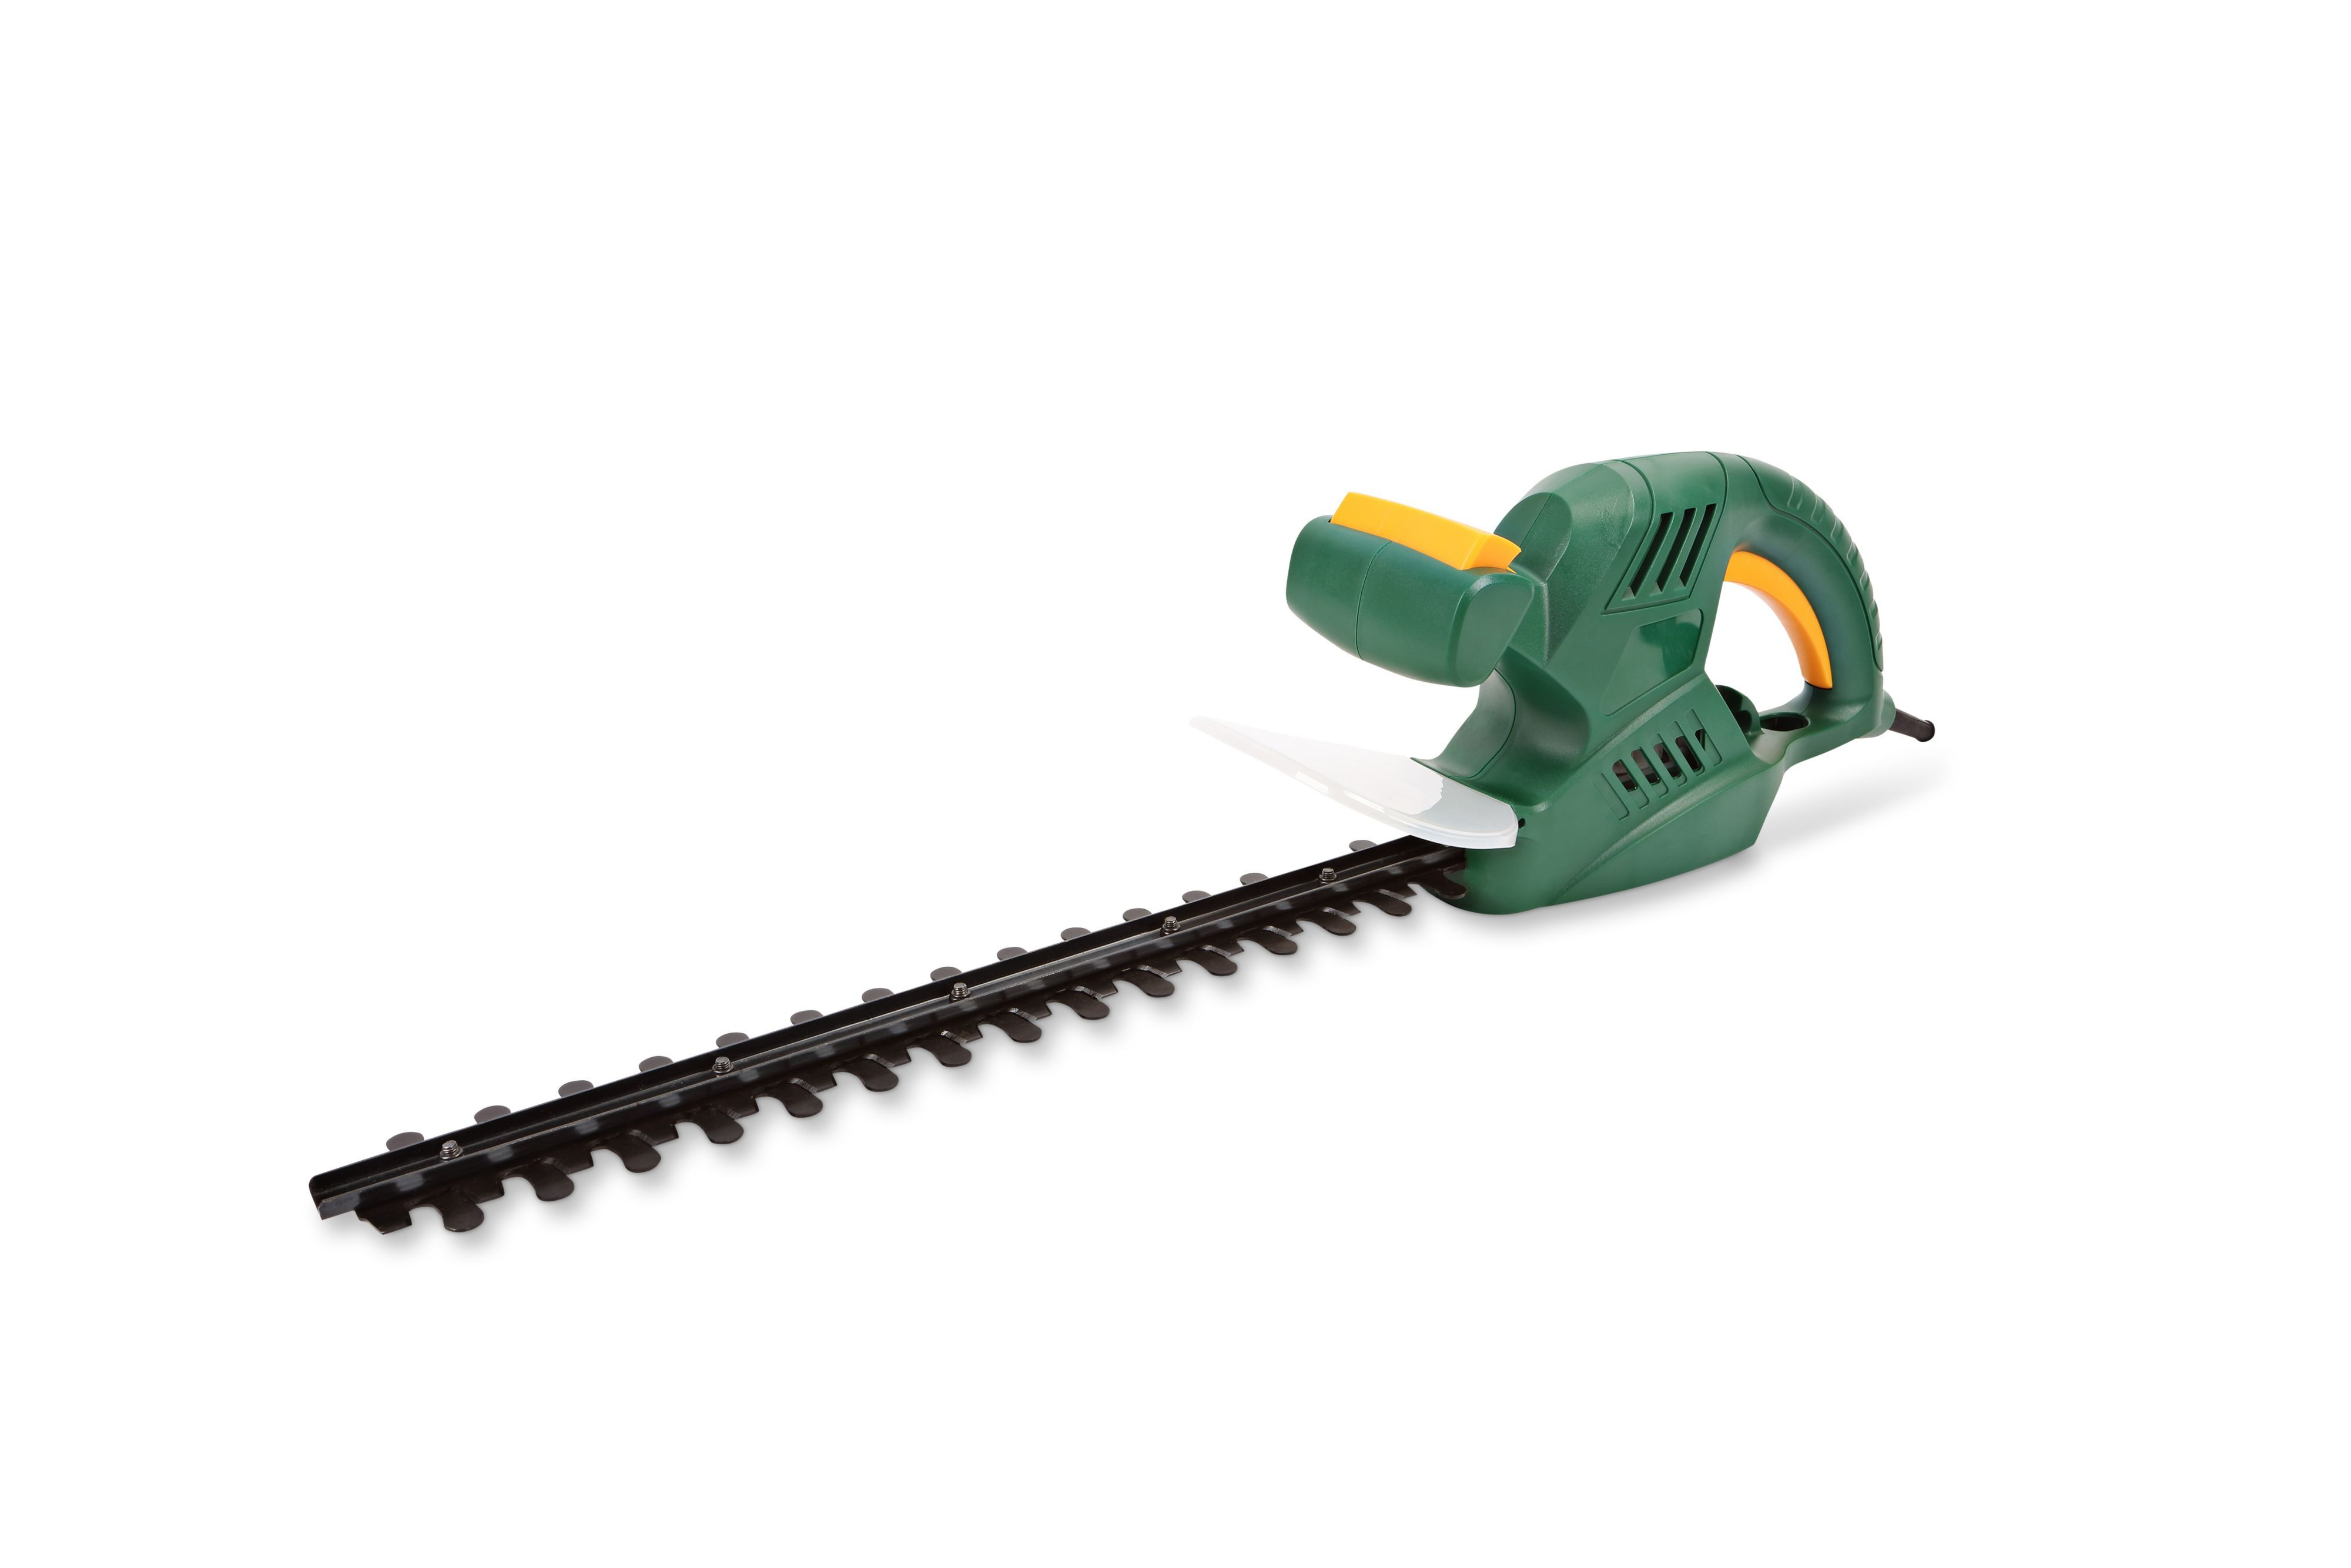 B&q 450w 410mm Electric Hedge Trimmer